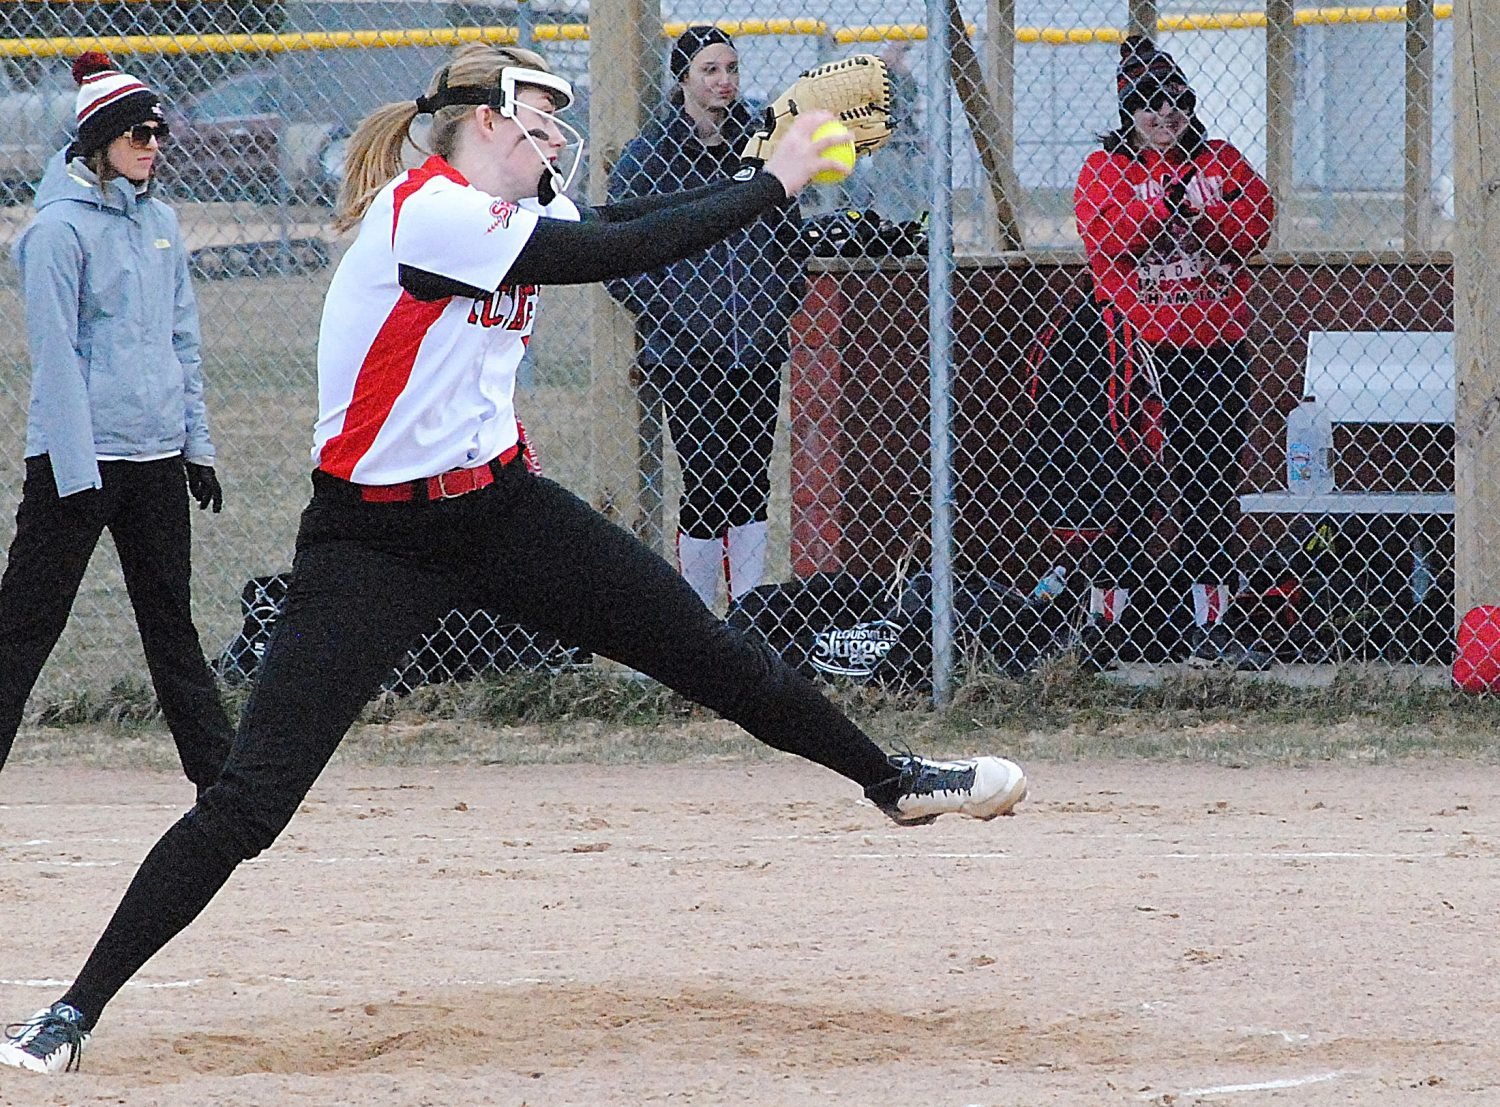 Spencer senior pitcher Macie Weber was named the Cloverbelt Conference East Division Softball Player of the Year after going 9-0 on the mound during conference games this season.